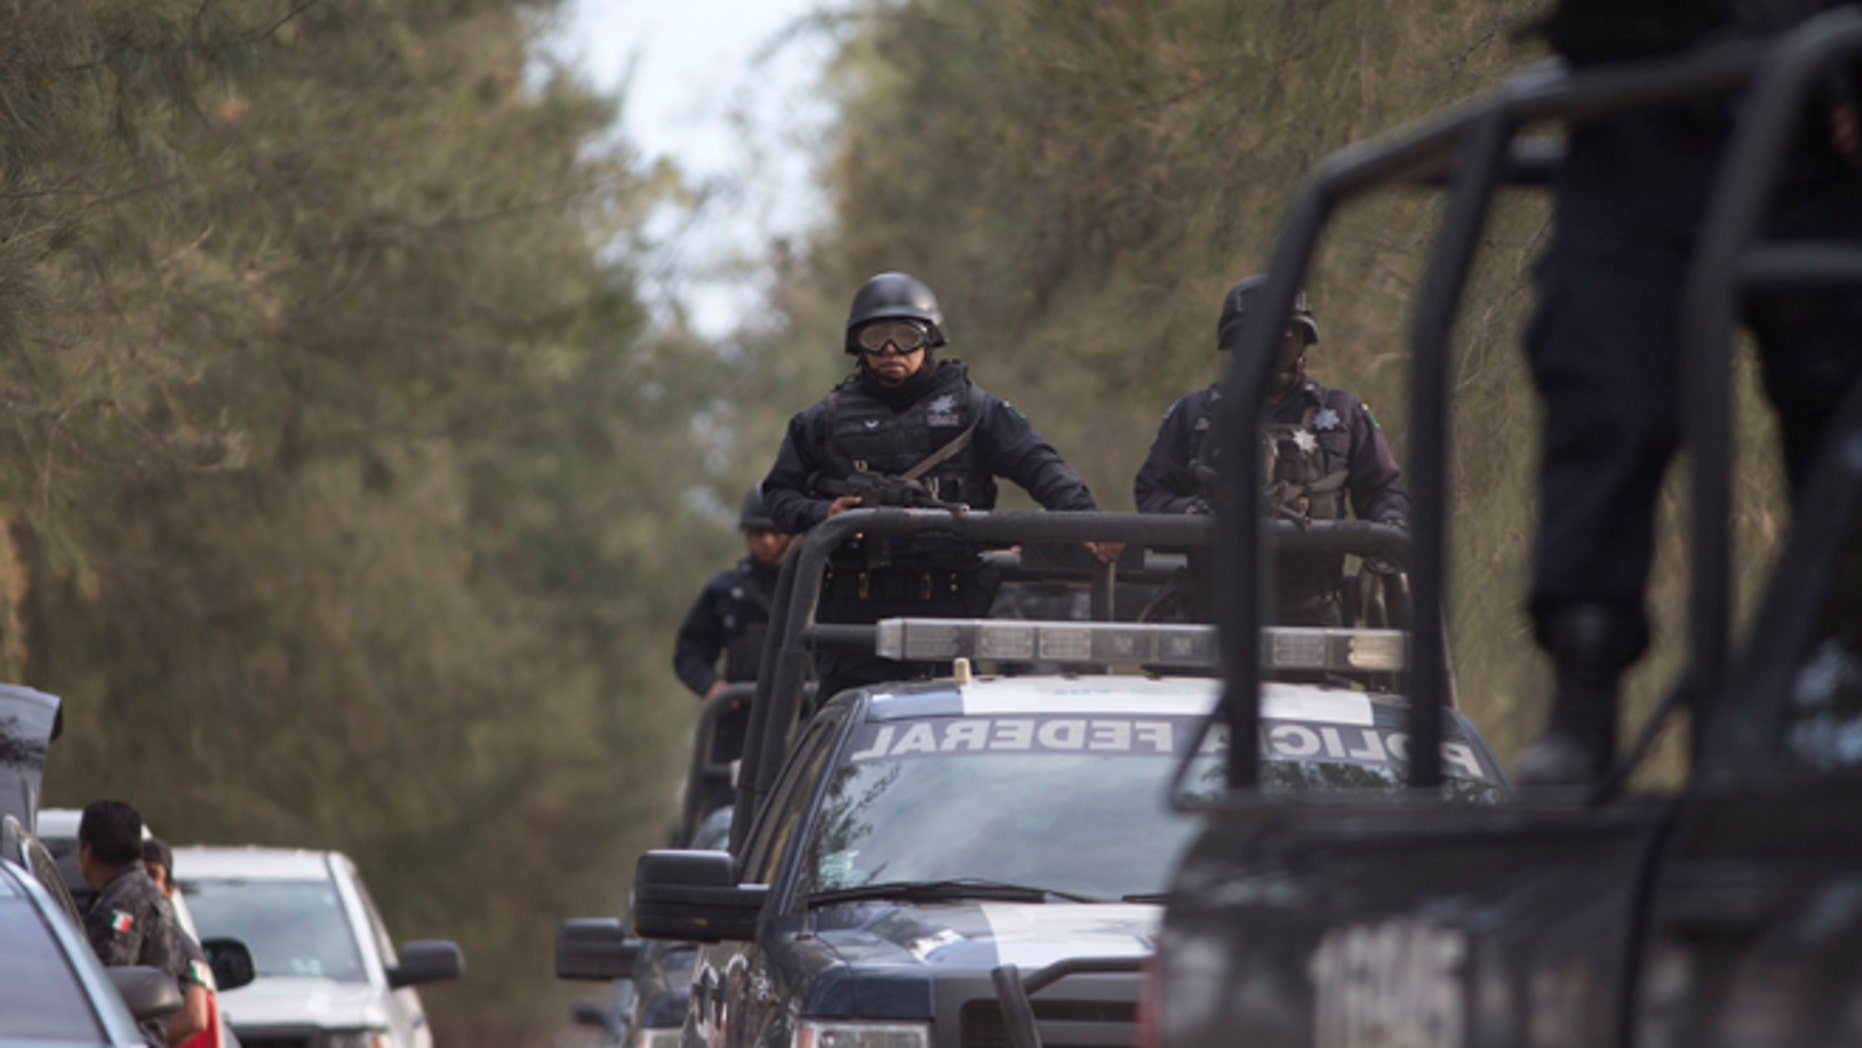 Mexican Federal Police stand guard near the entrance of Rancho del Sol, near Ecuanduero, in western Mexico, Friday, May 22, 2015. At least 43 people died Friday in what authorities described as a fierce, three-hour gunbattle between federal forces and suspected drug gang gunmen at the ranch. (AP Photo/Eduardo Verdugo)